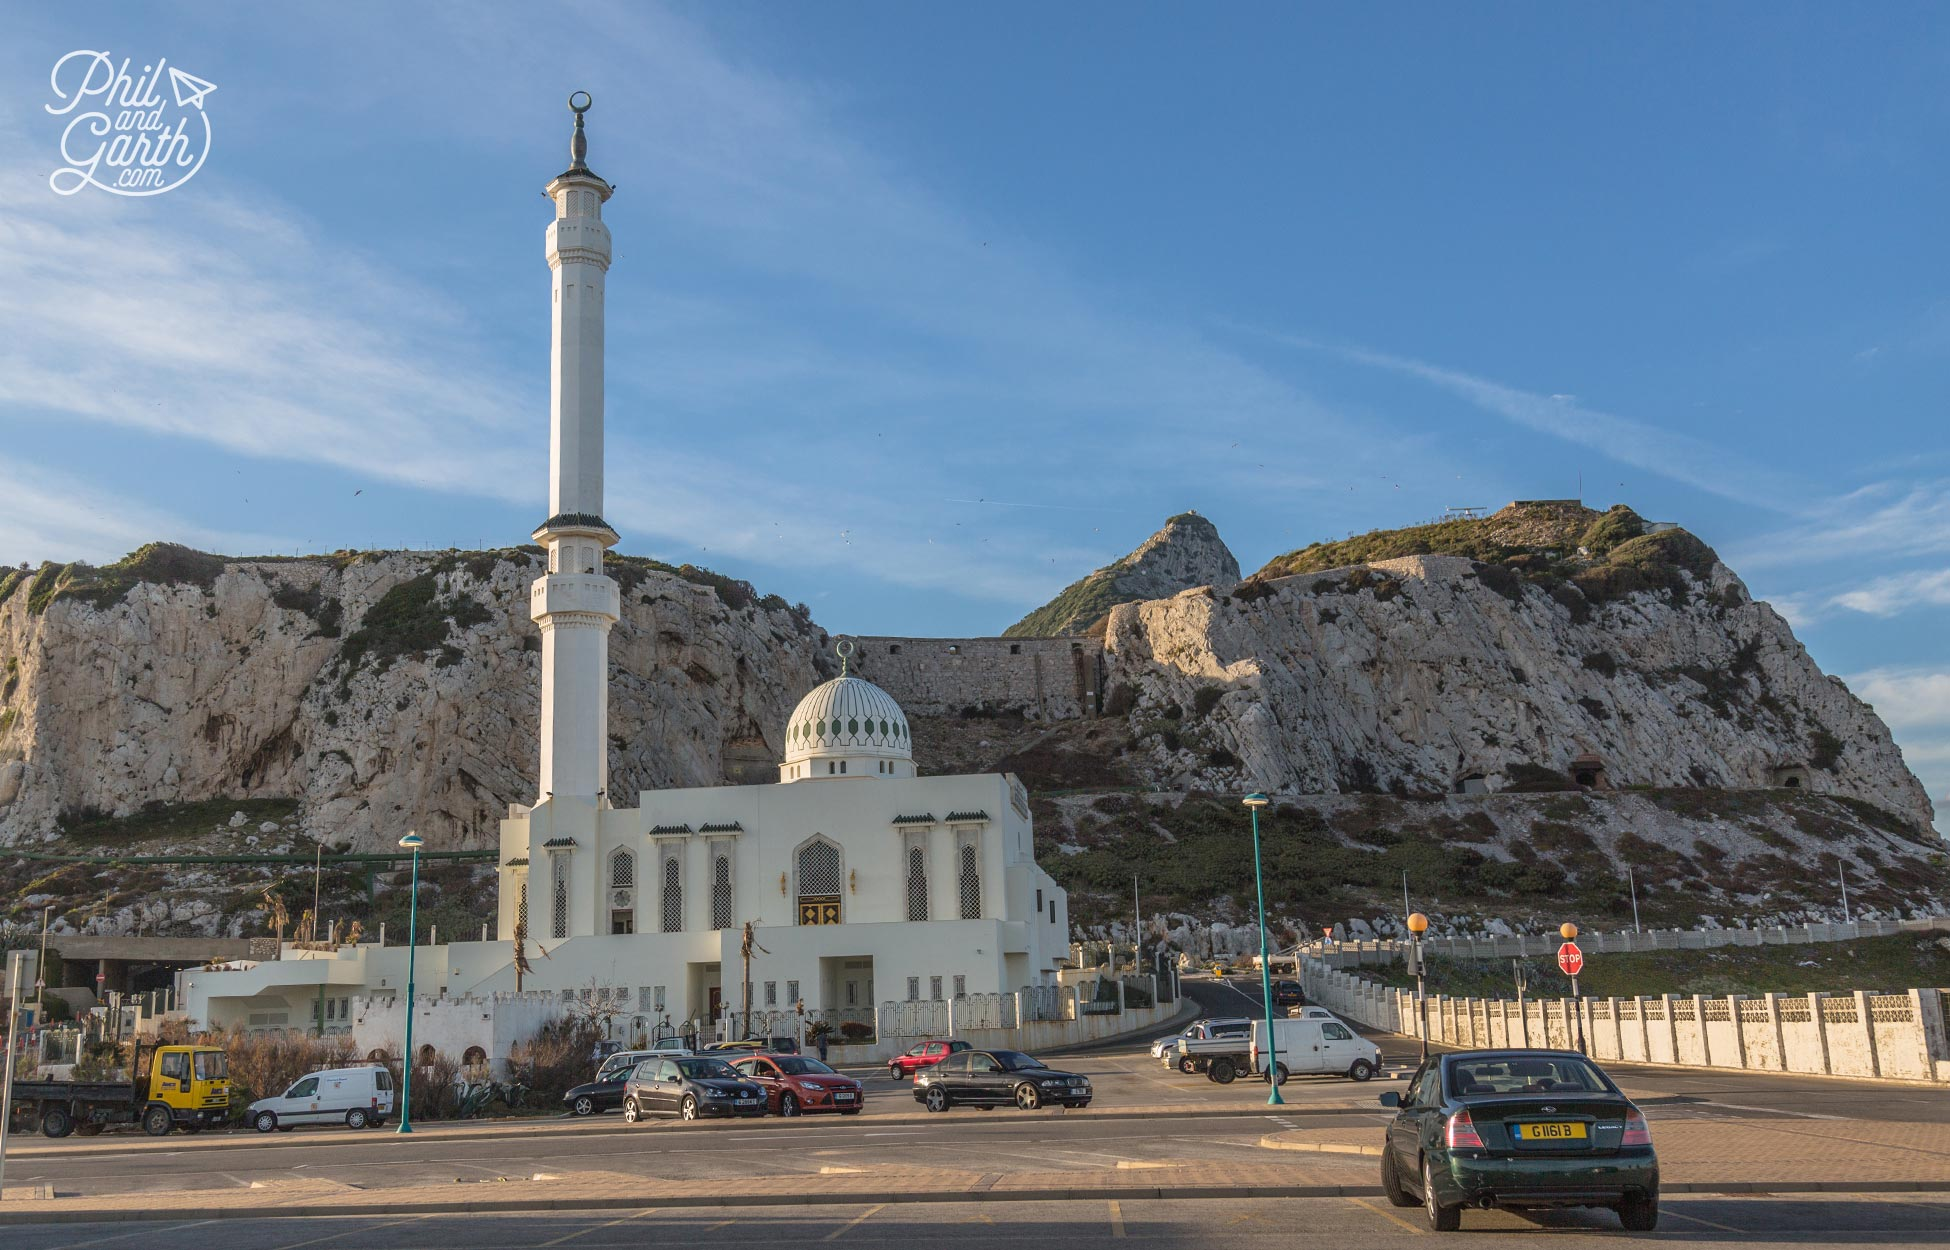 The Ibrahim-al-Ibrahim mosque at Europa Point